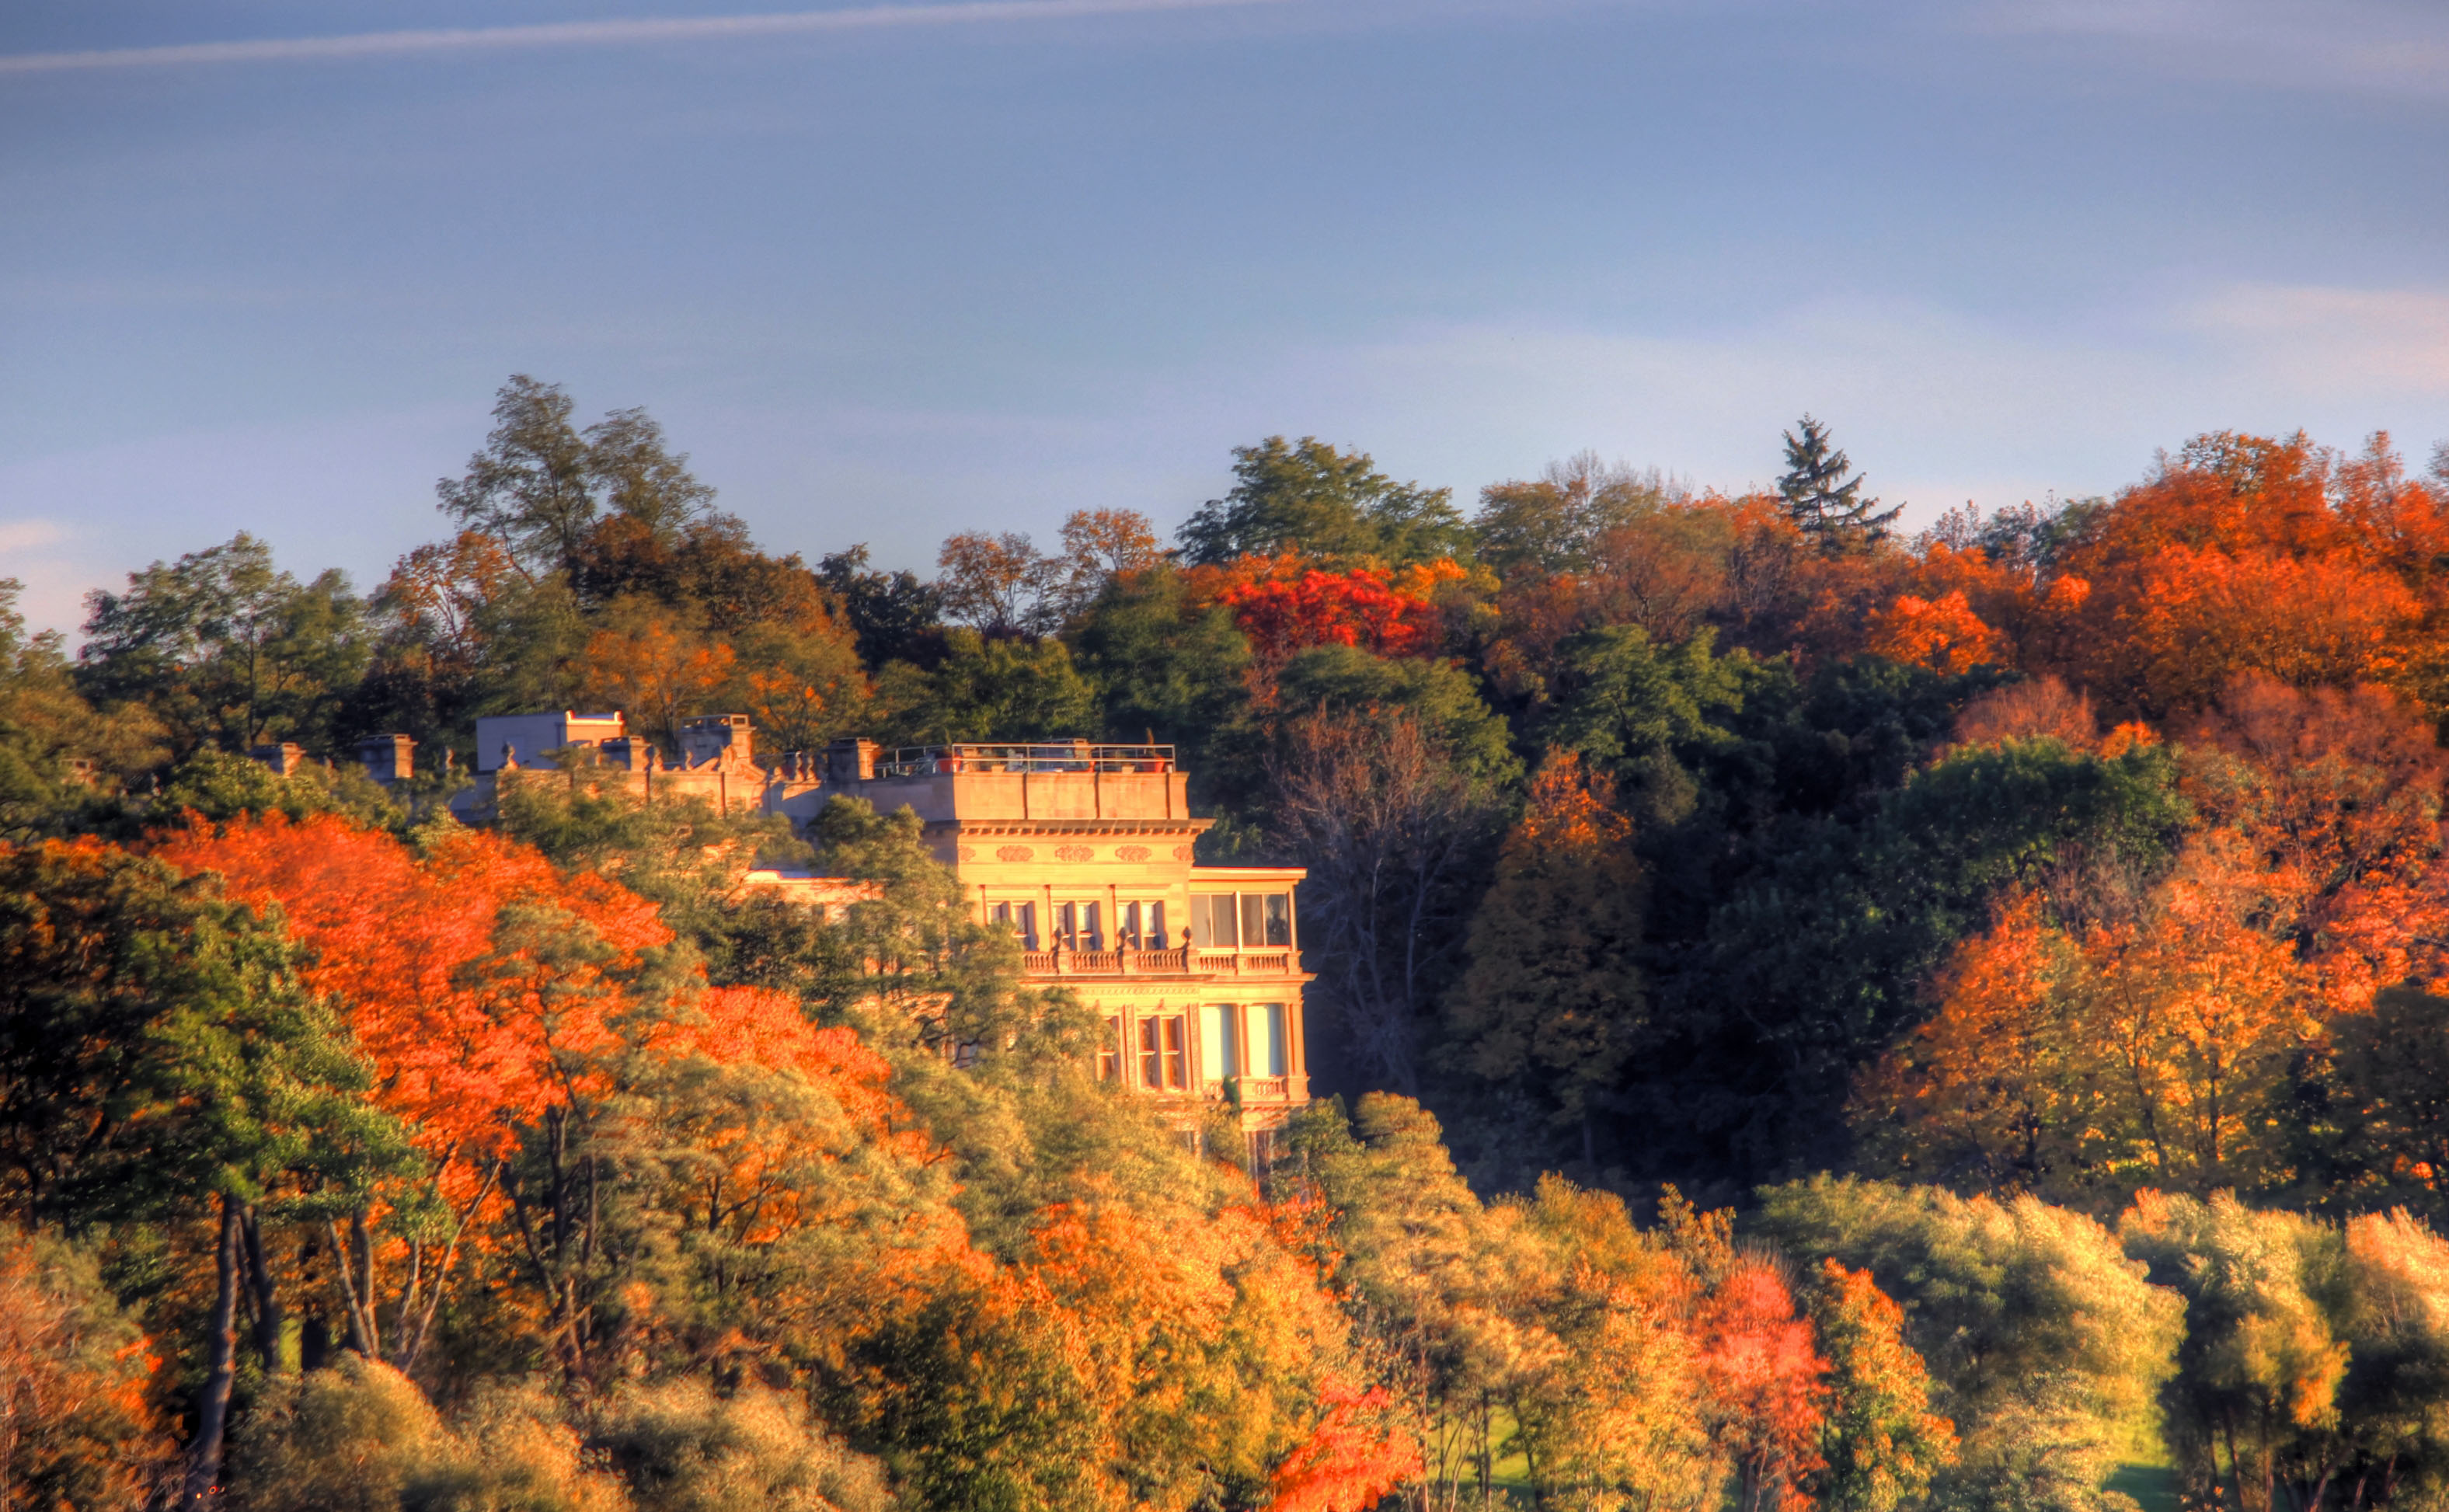 Fall Wallpaper For Desktop Background Mansion On The Lake At Lake Geneva Wisconsin Image Free